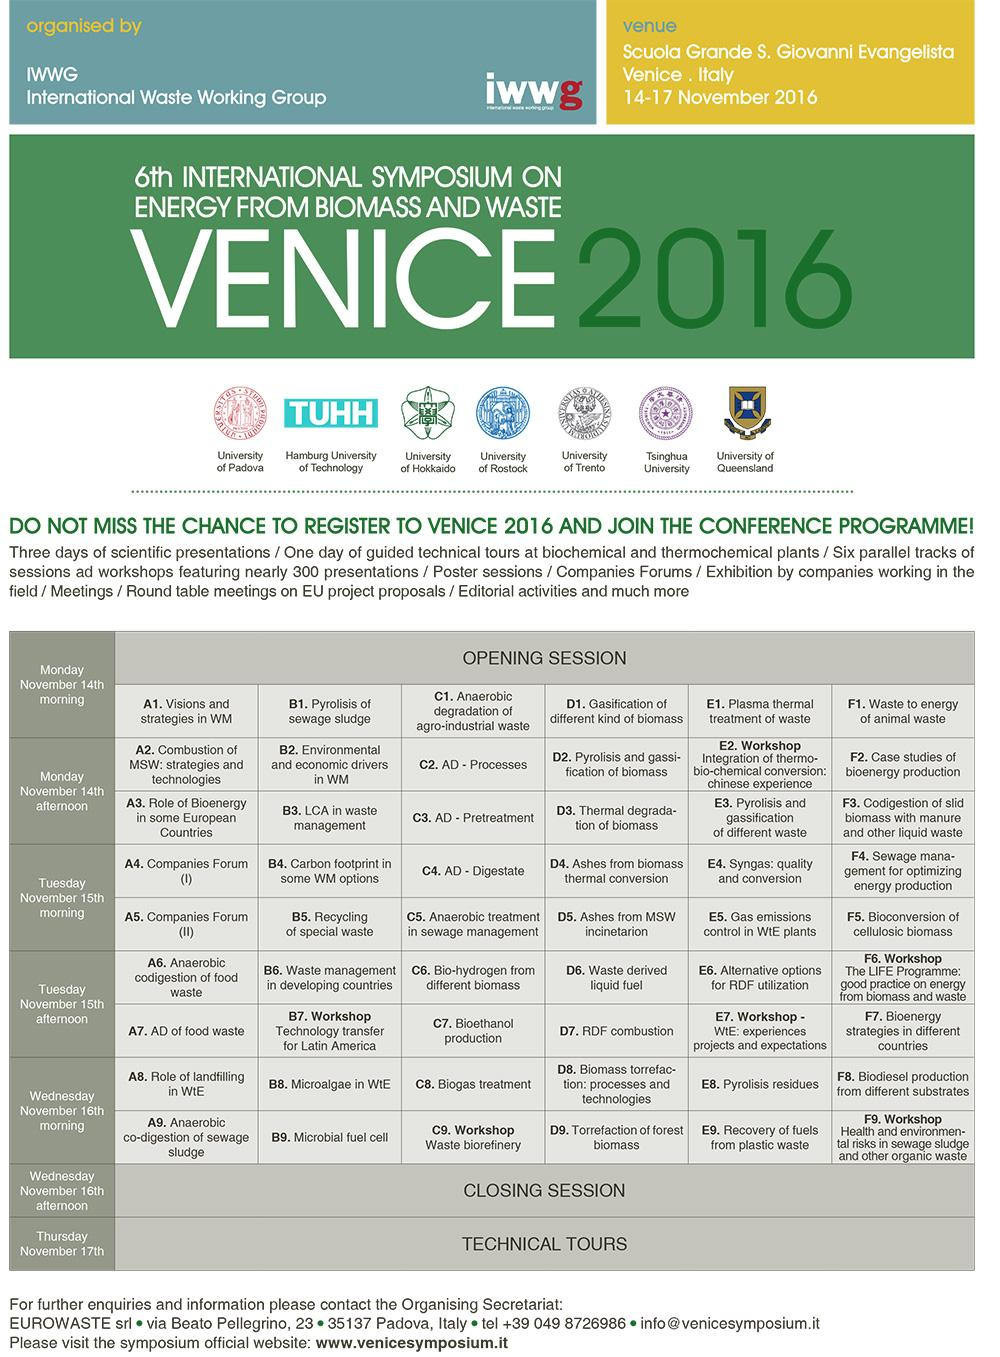 6th INTERNATIONAL SYMPOSIUM ON ENERGY FROM BIOMASS AND WASTE - VENICE  2016